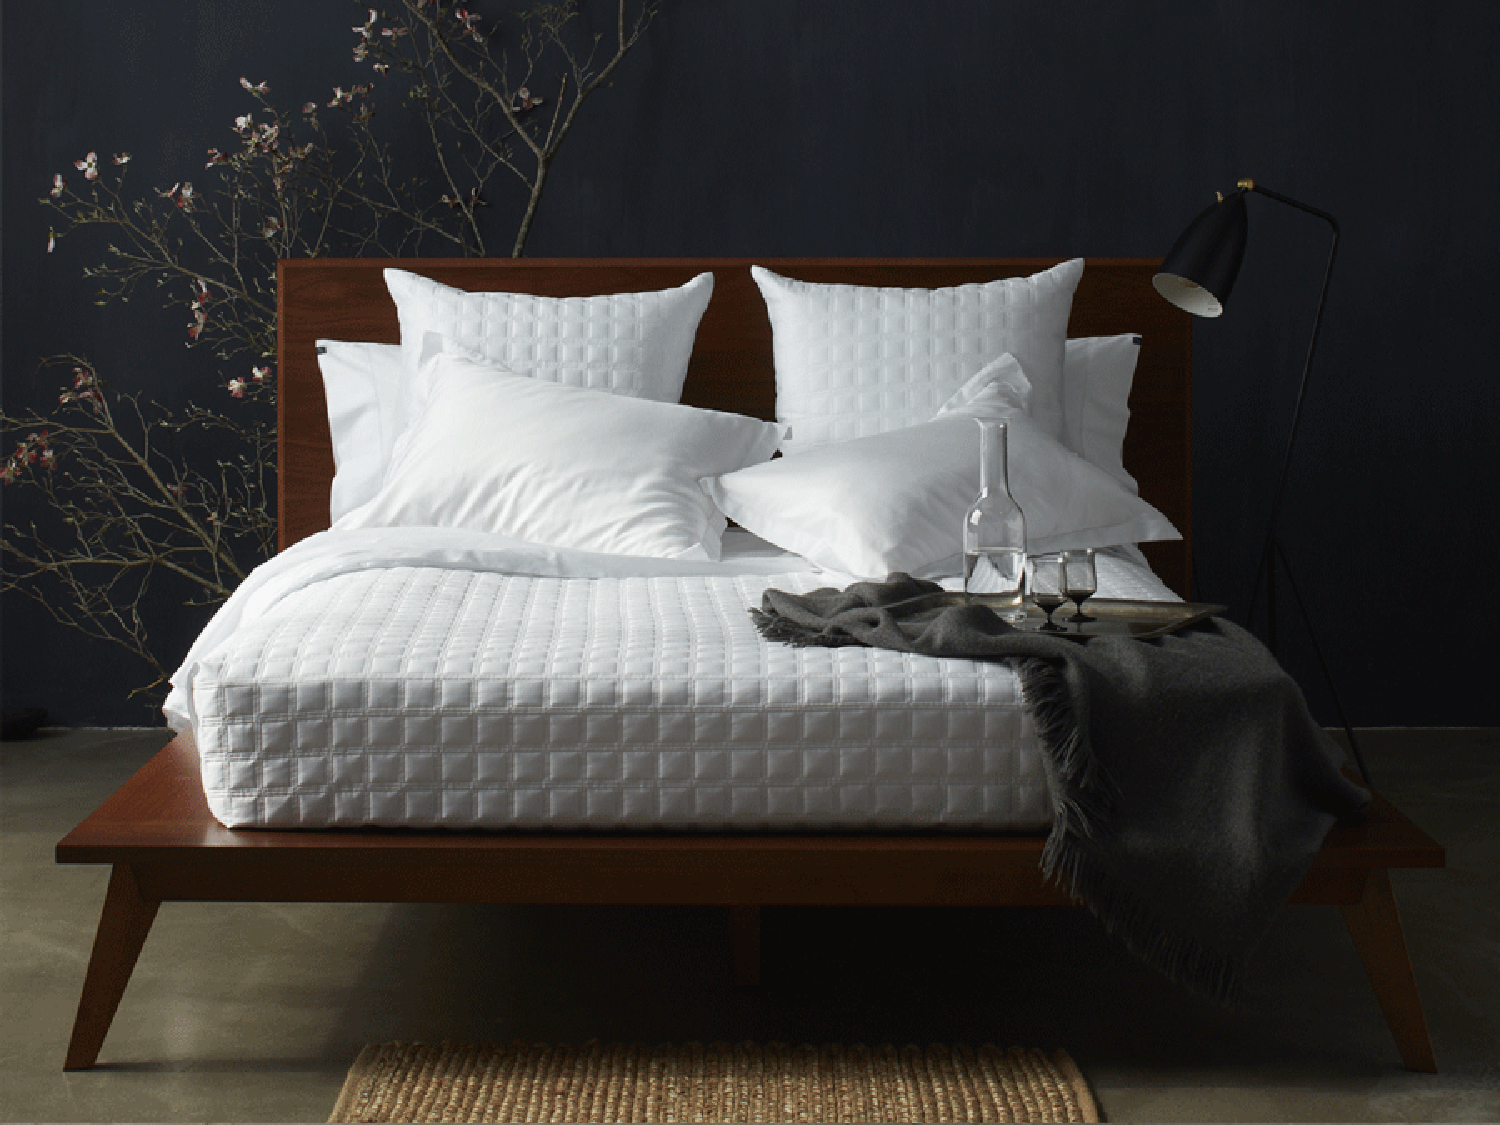 The 10 Best Bedding Sets Of 2021 According To Reviews Southern Living